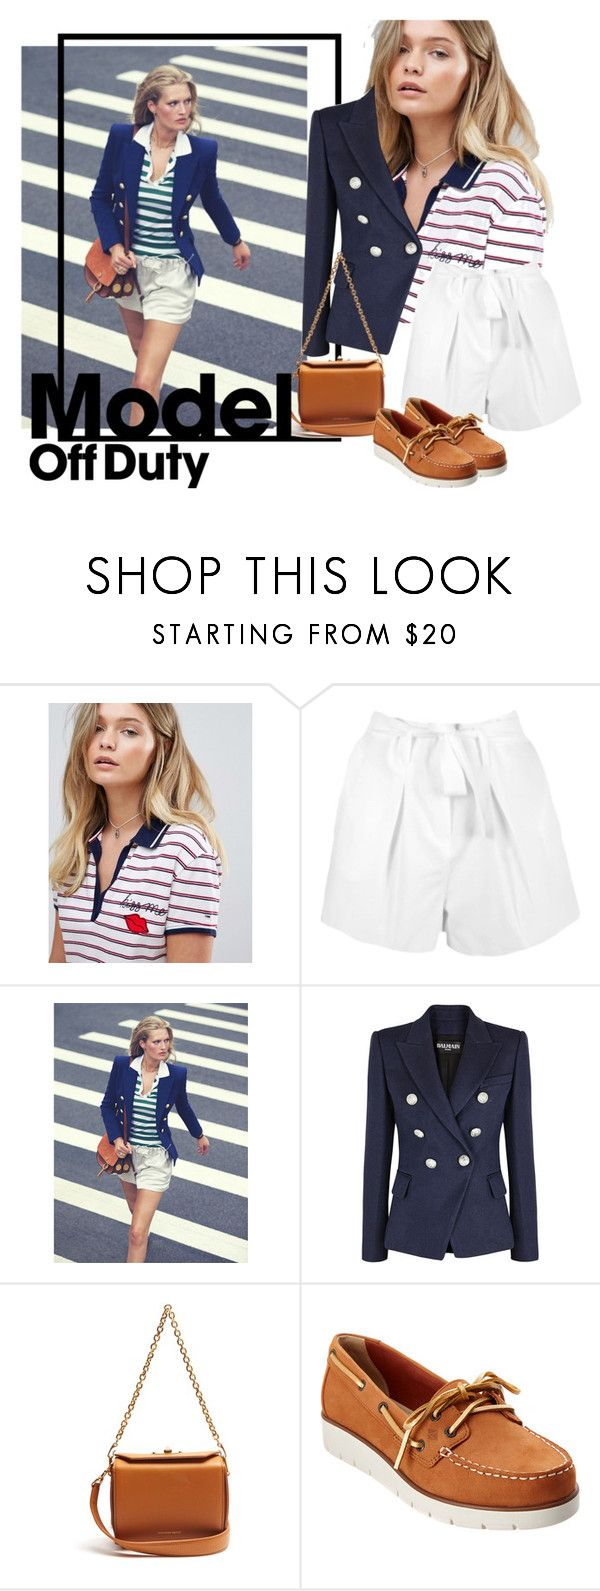 """model off duty"" by sahrish-hossain ❤ liked on Polyvore featuring Hilfiger Denim, Boohoo, Balmain, Alexander McQueen, Sperry and casualstyle"